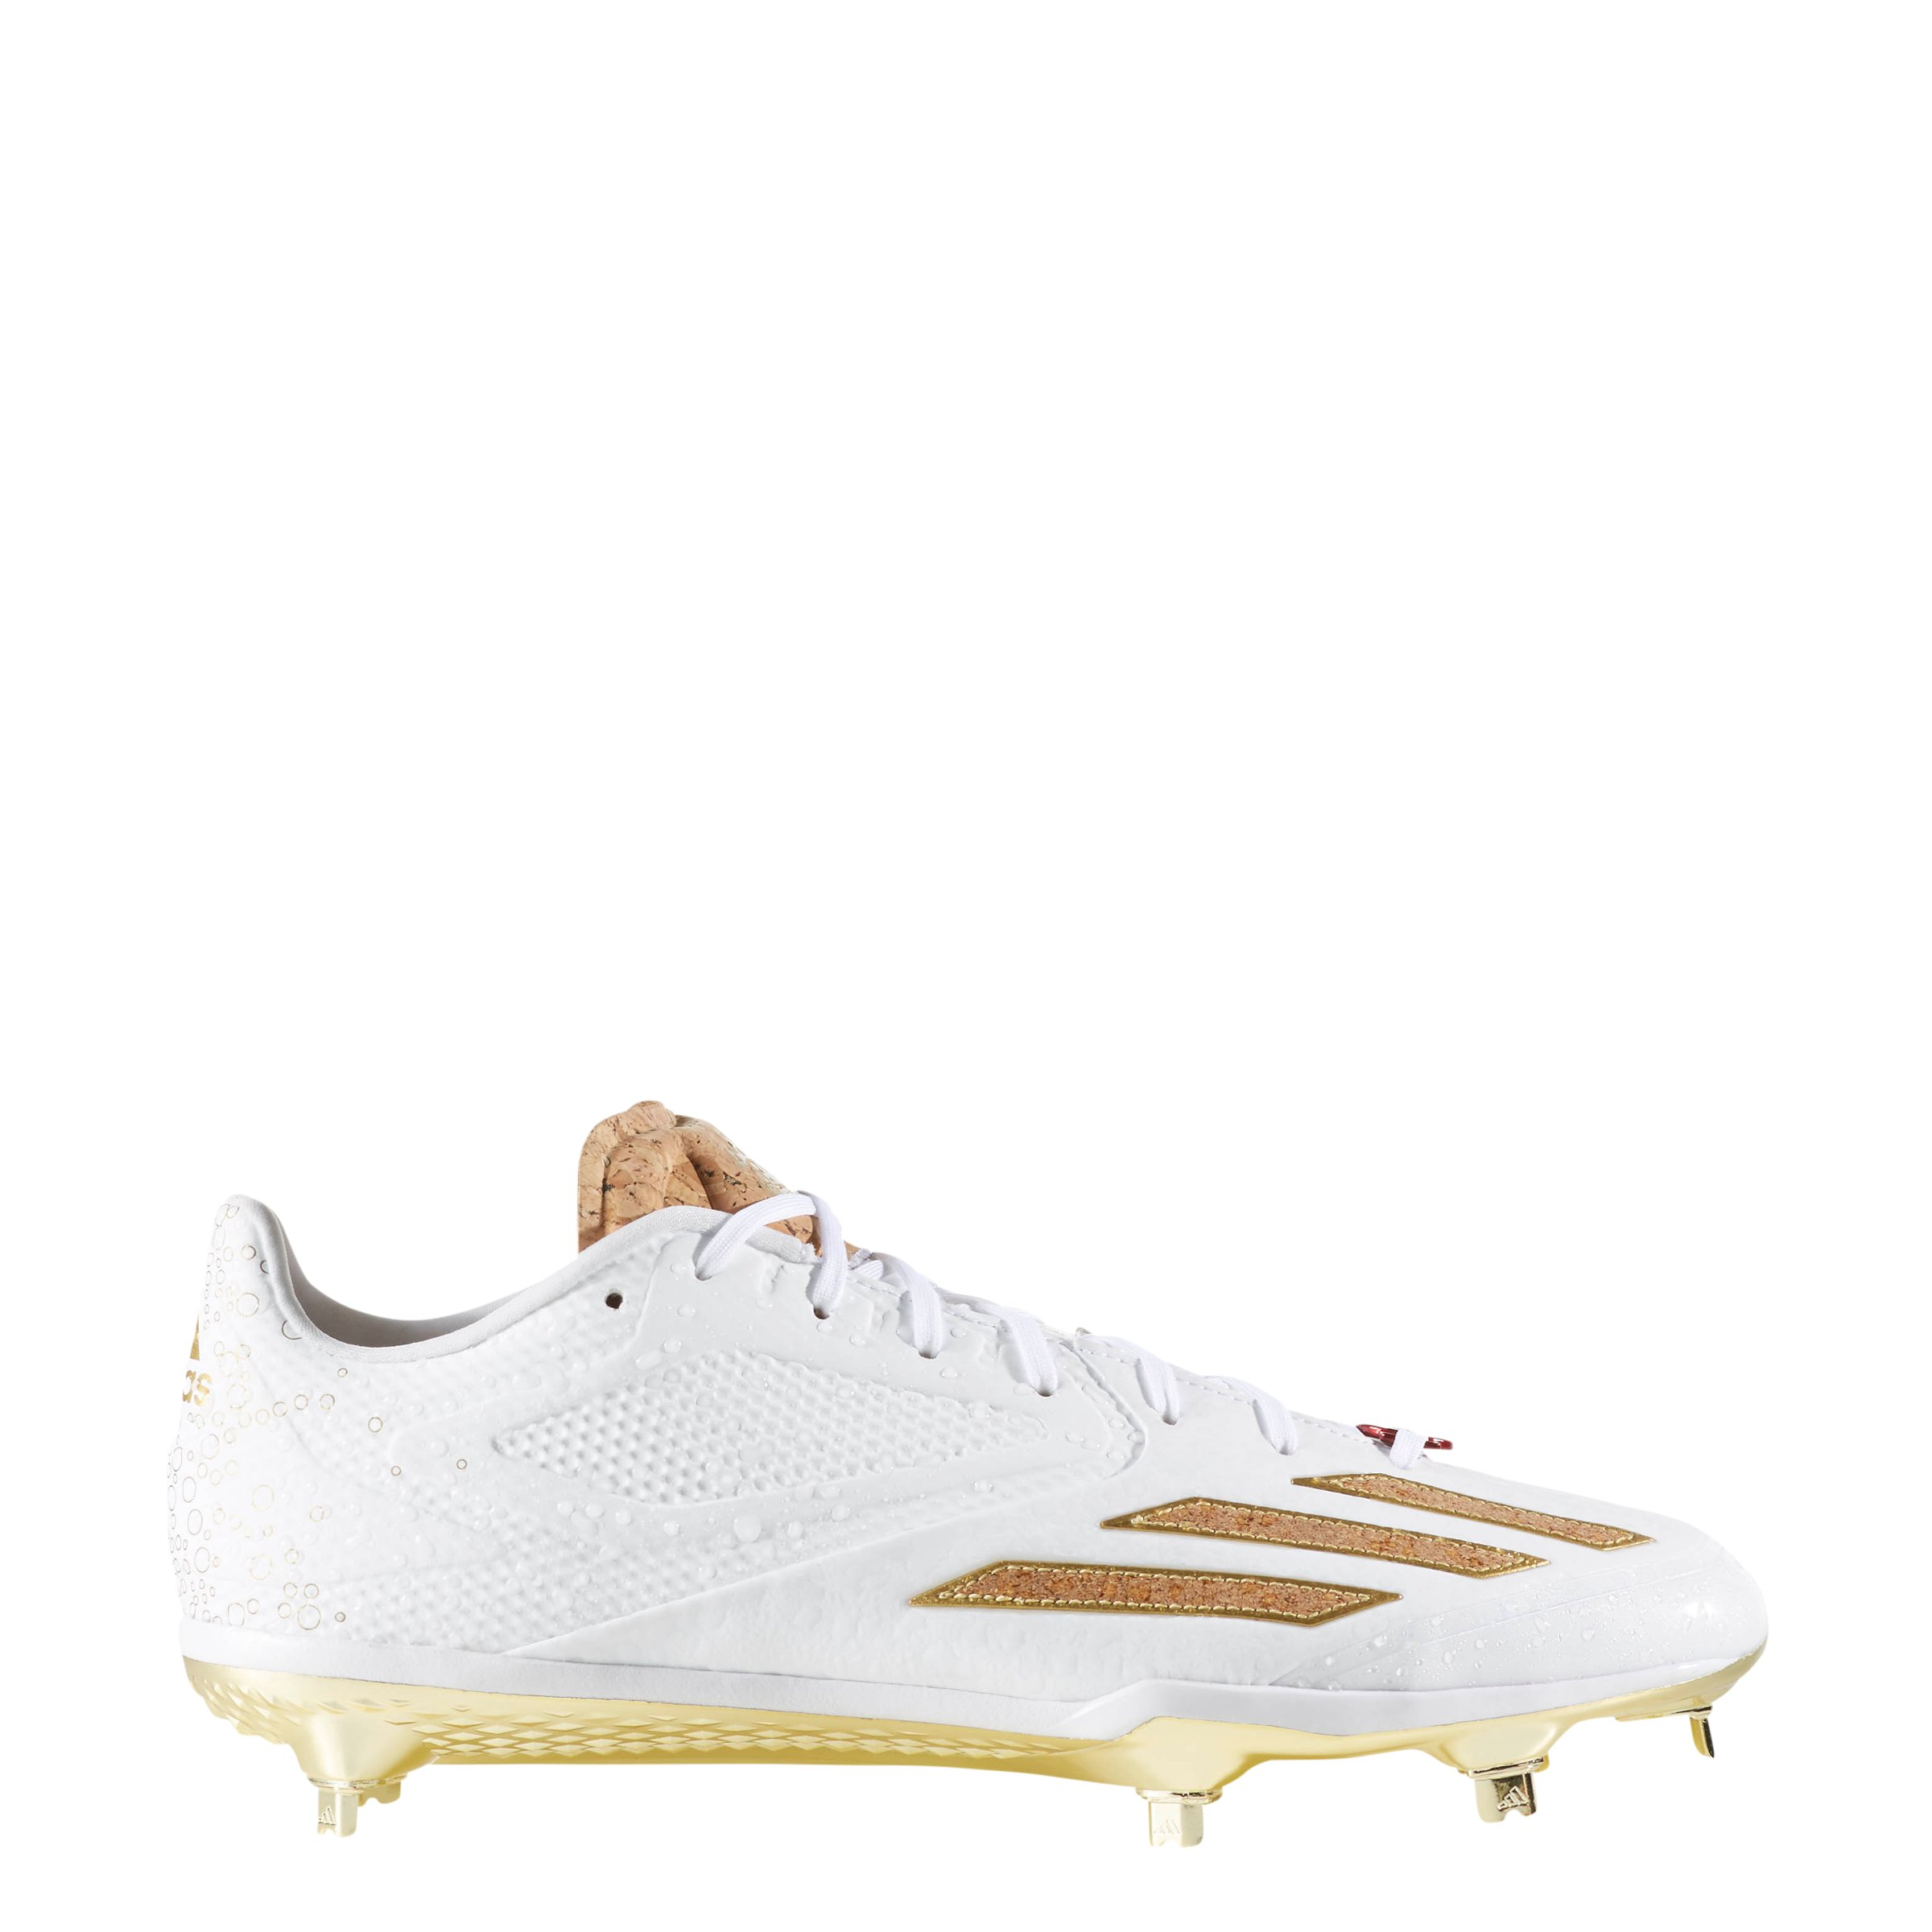 adidas afterburner baseball cleats